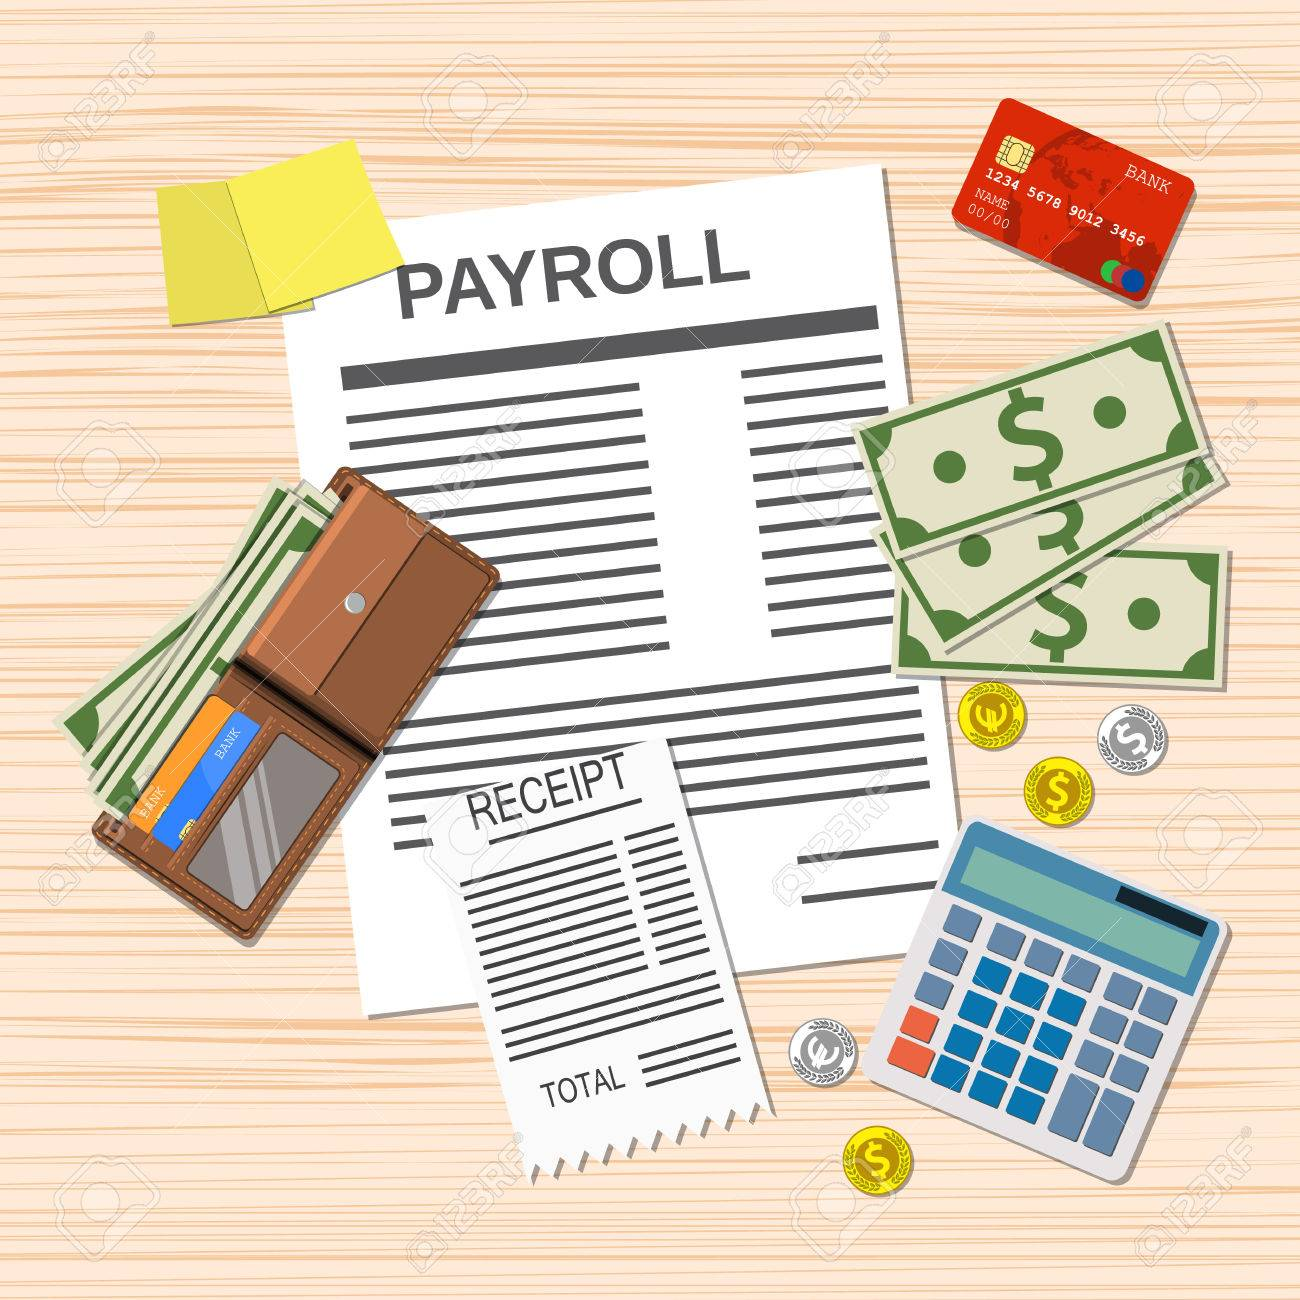 Payroll Concept. Payroll Invoice Sheet, Check Receipt, Calculator, Leather  Wallet, Money  Payroll Invoice